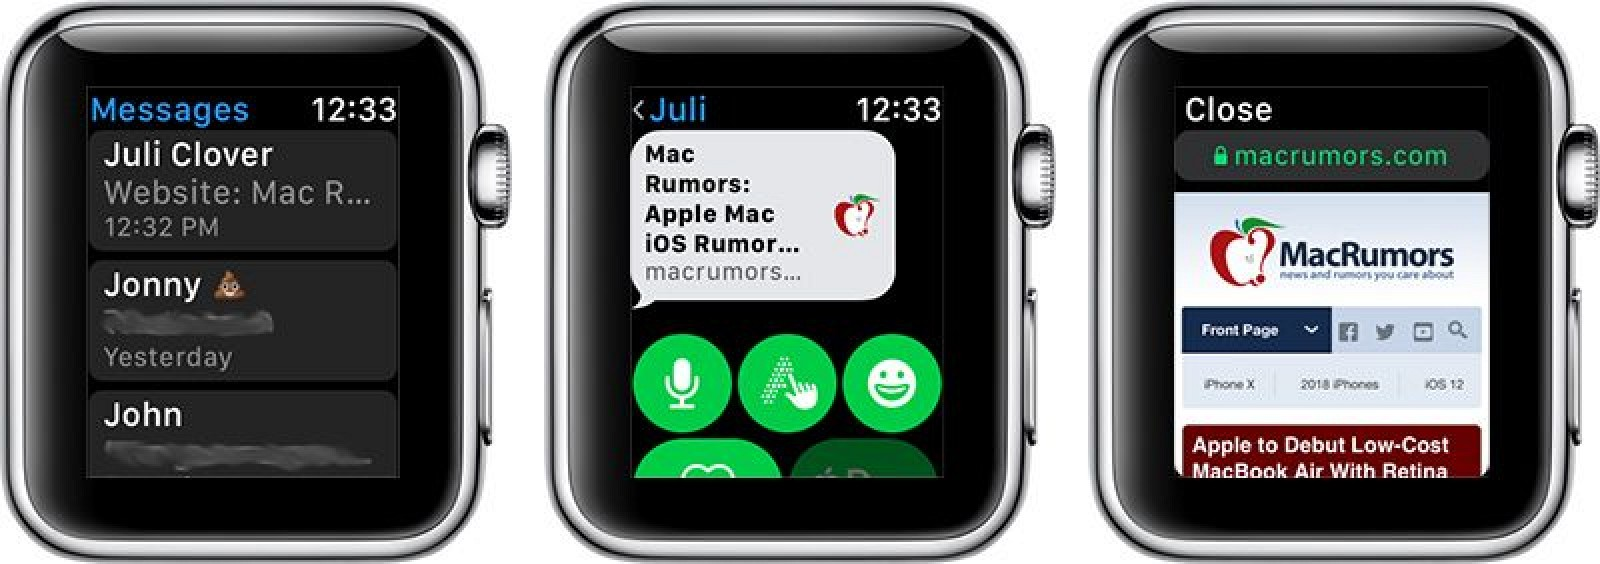 How to Browse the Internet on Apple Watch Through watchOS 5's WebKit Integration